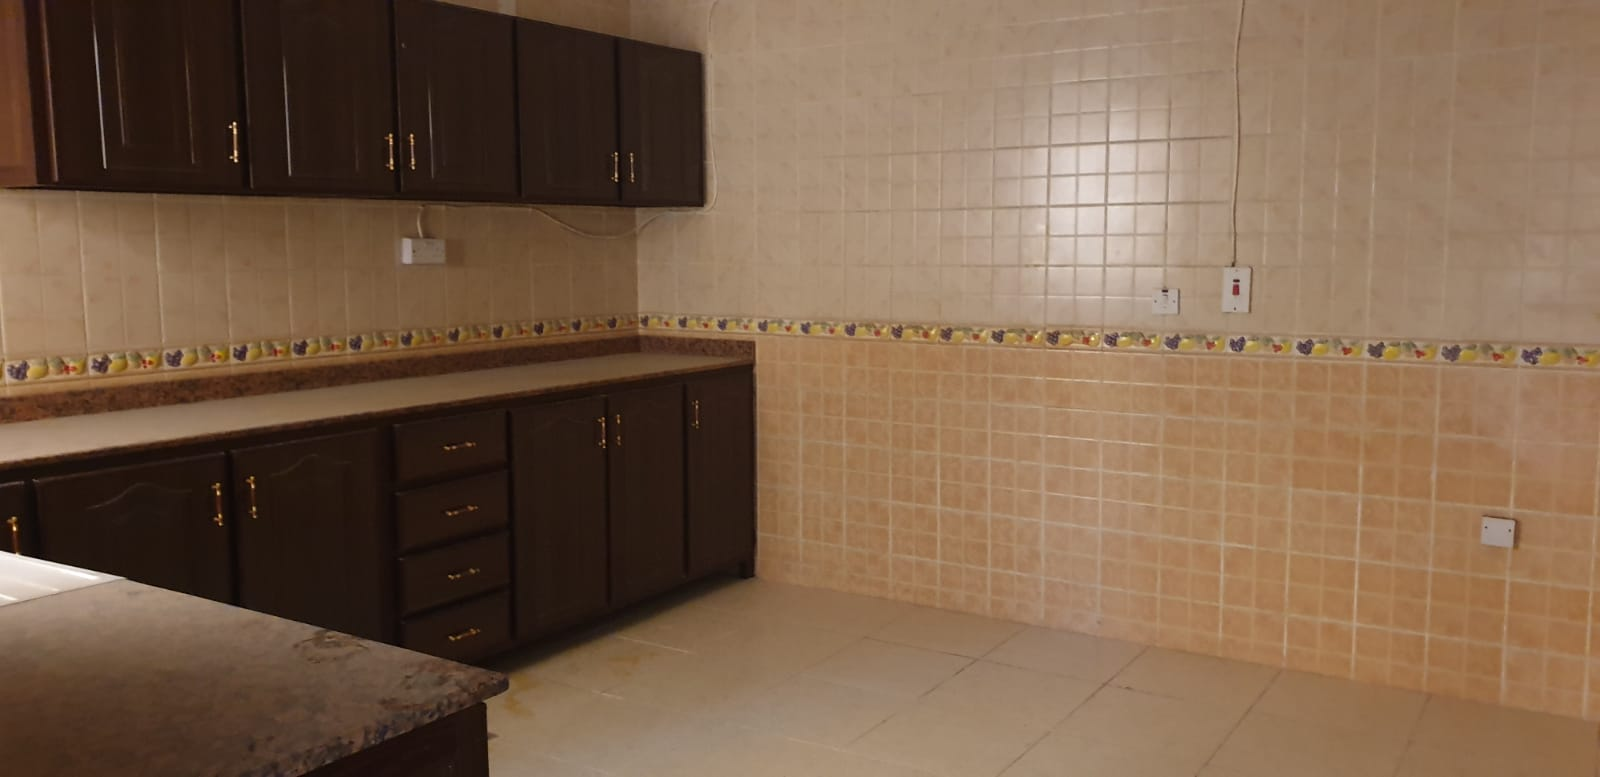 5 Bedroom Villa for Rent for Executive staffs in New Salata Area